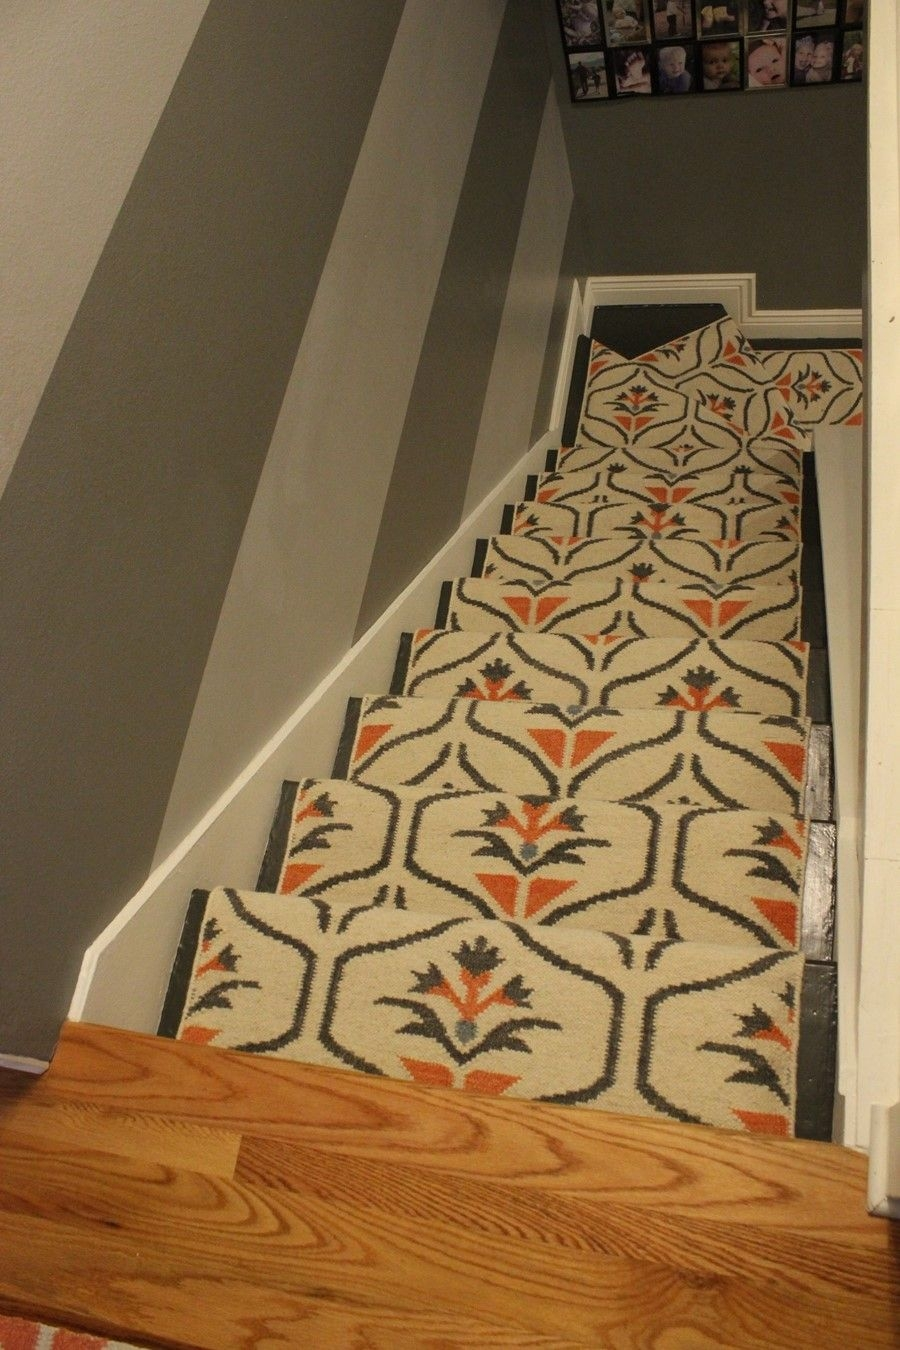 Update Your Staircase How To Remove And Install Carpet On The Stairs | Carpet For Bedrooms And Stairs | Modern Staircase | Staircase Remodel | Dark Grey Carpet | Stair Railing | Stair Treads